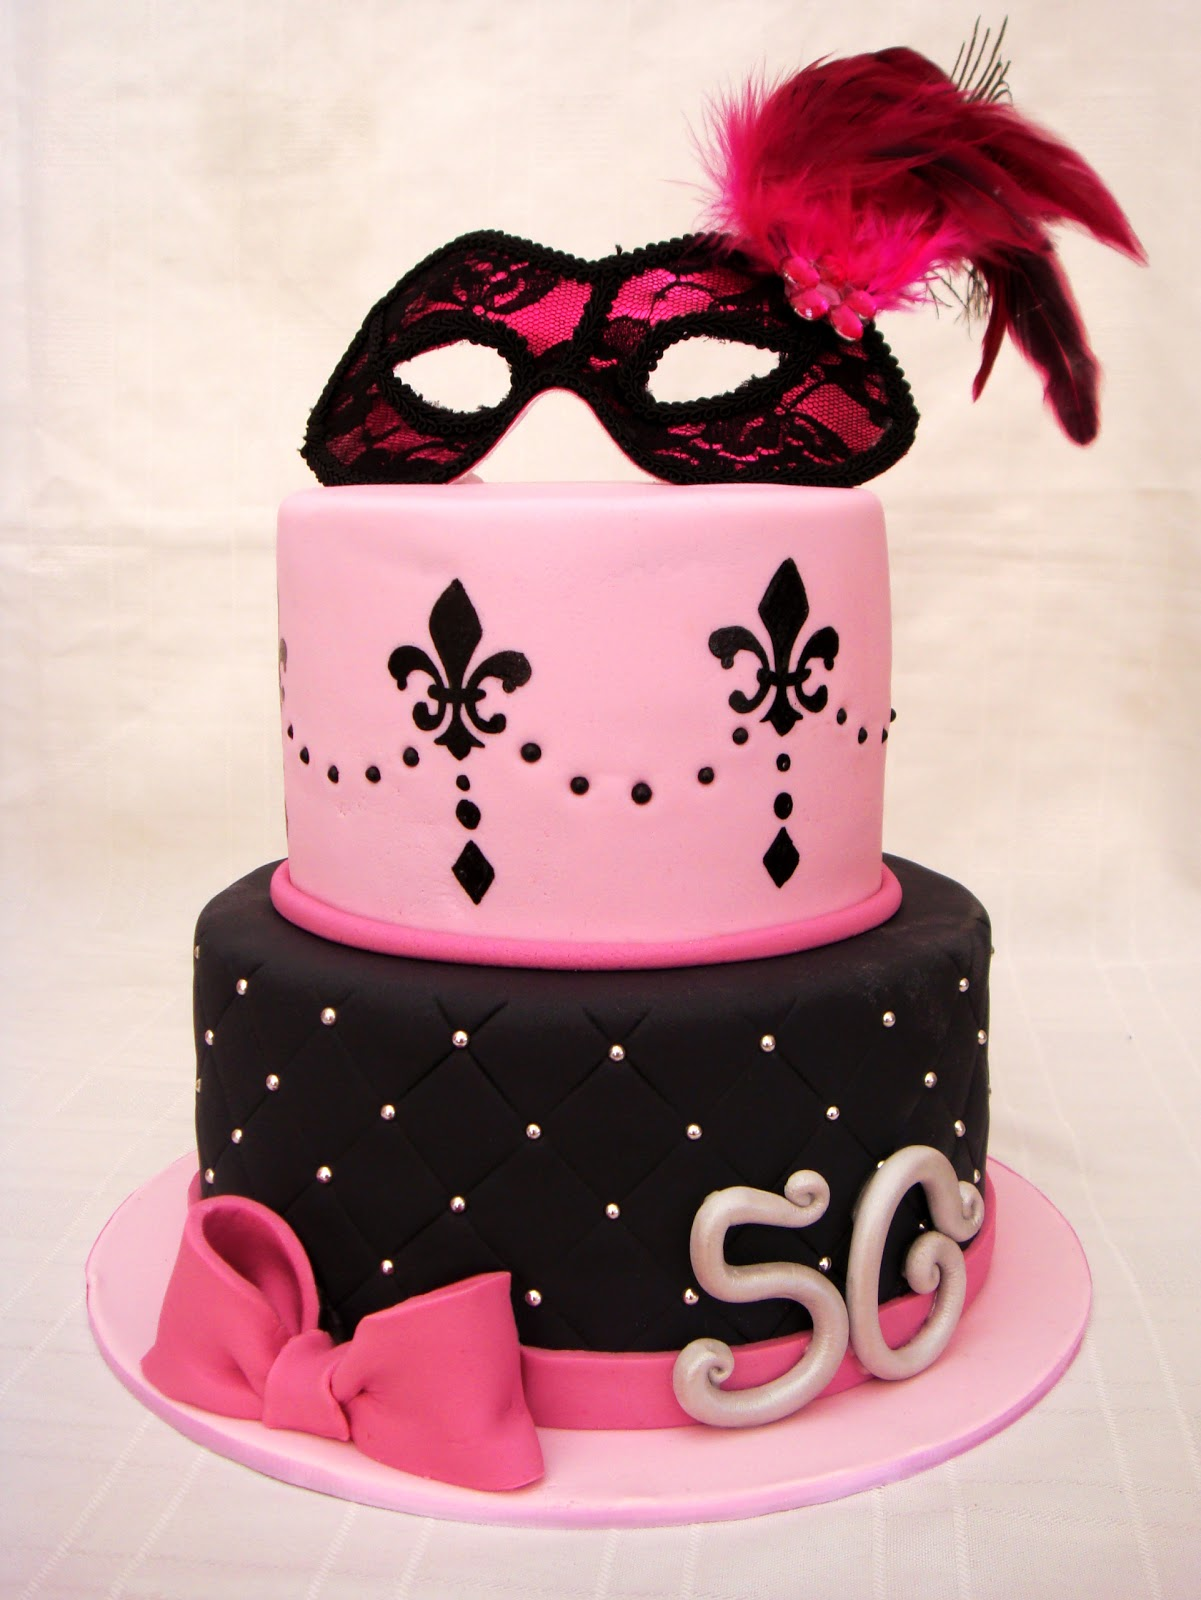 Pink and Black Masquerade Cake